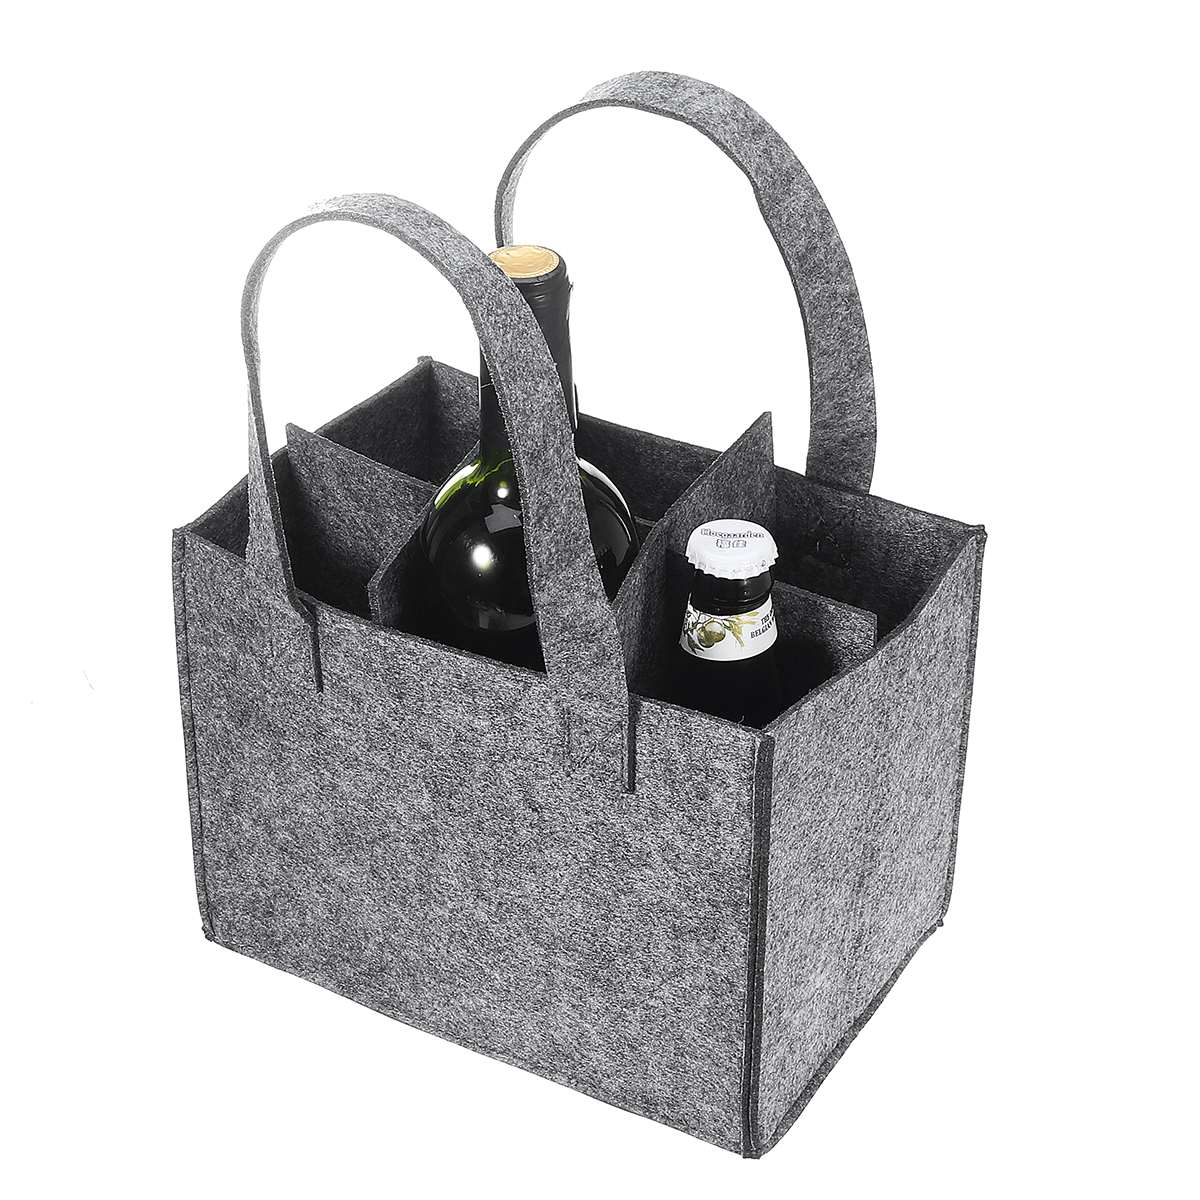 Reusable Fashion Felt Bag Wine Holder Beer Bottle Shopping Tote Bag Bottle Carrier with 6 Bottles Divider Washable Grey